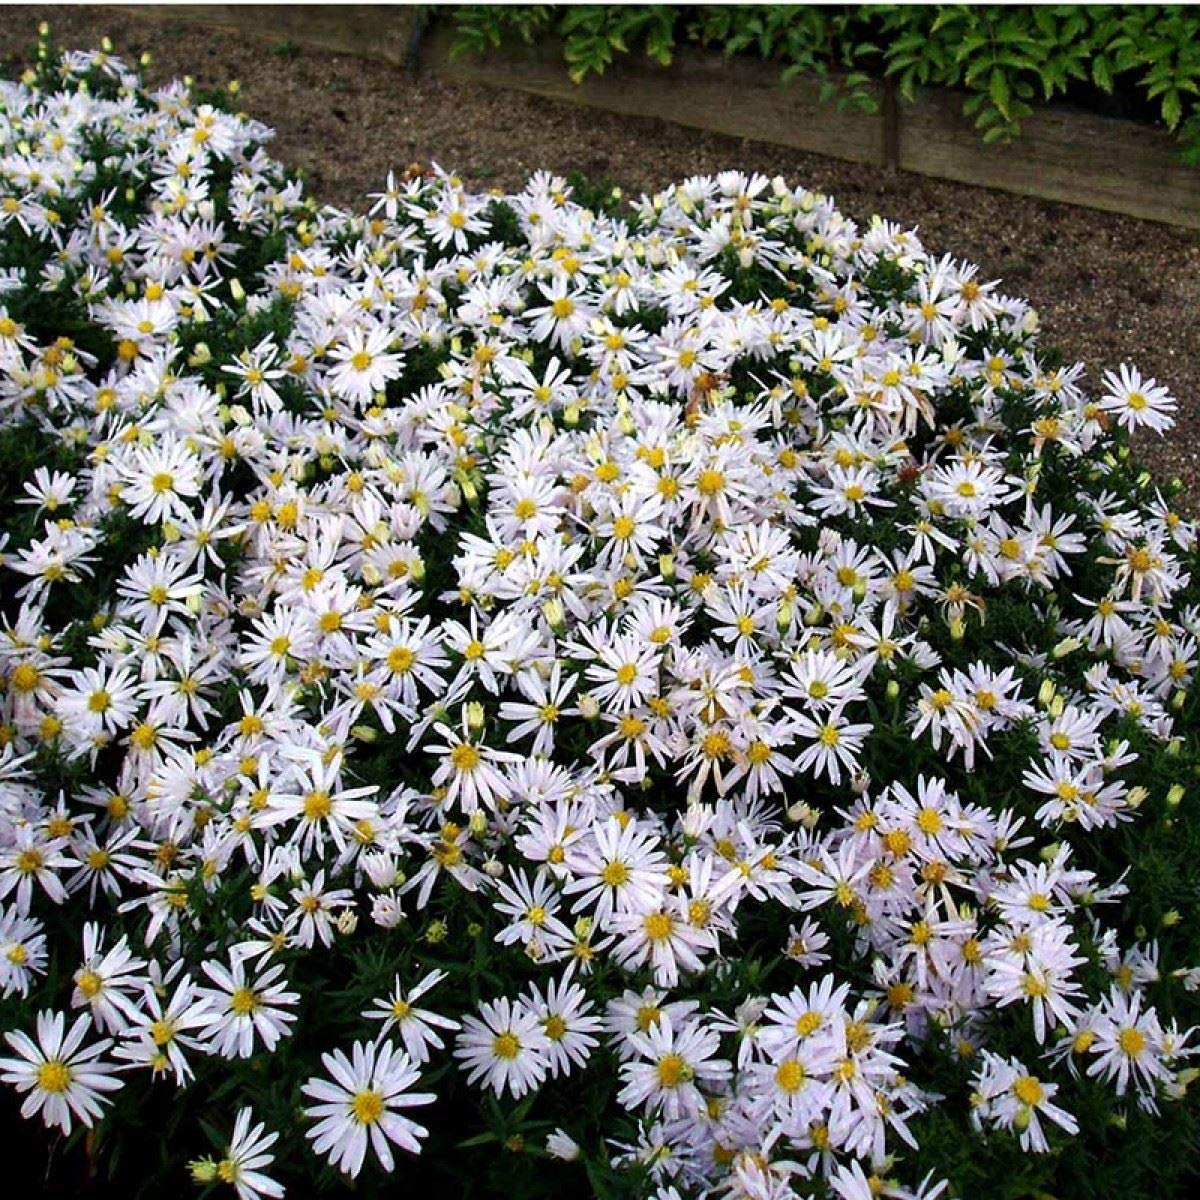 Aster dumosus Kristina - Michaelmas Daisy - 3 Plants in 9cm Pots IR Plant and Garden Centre